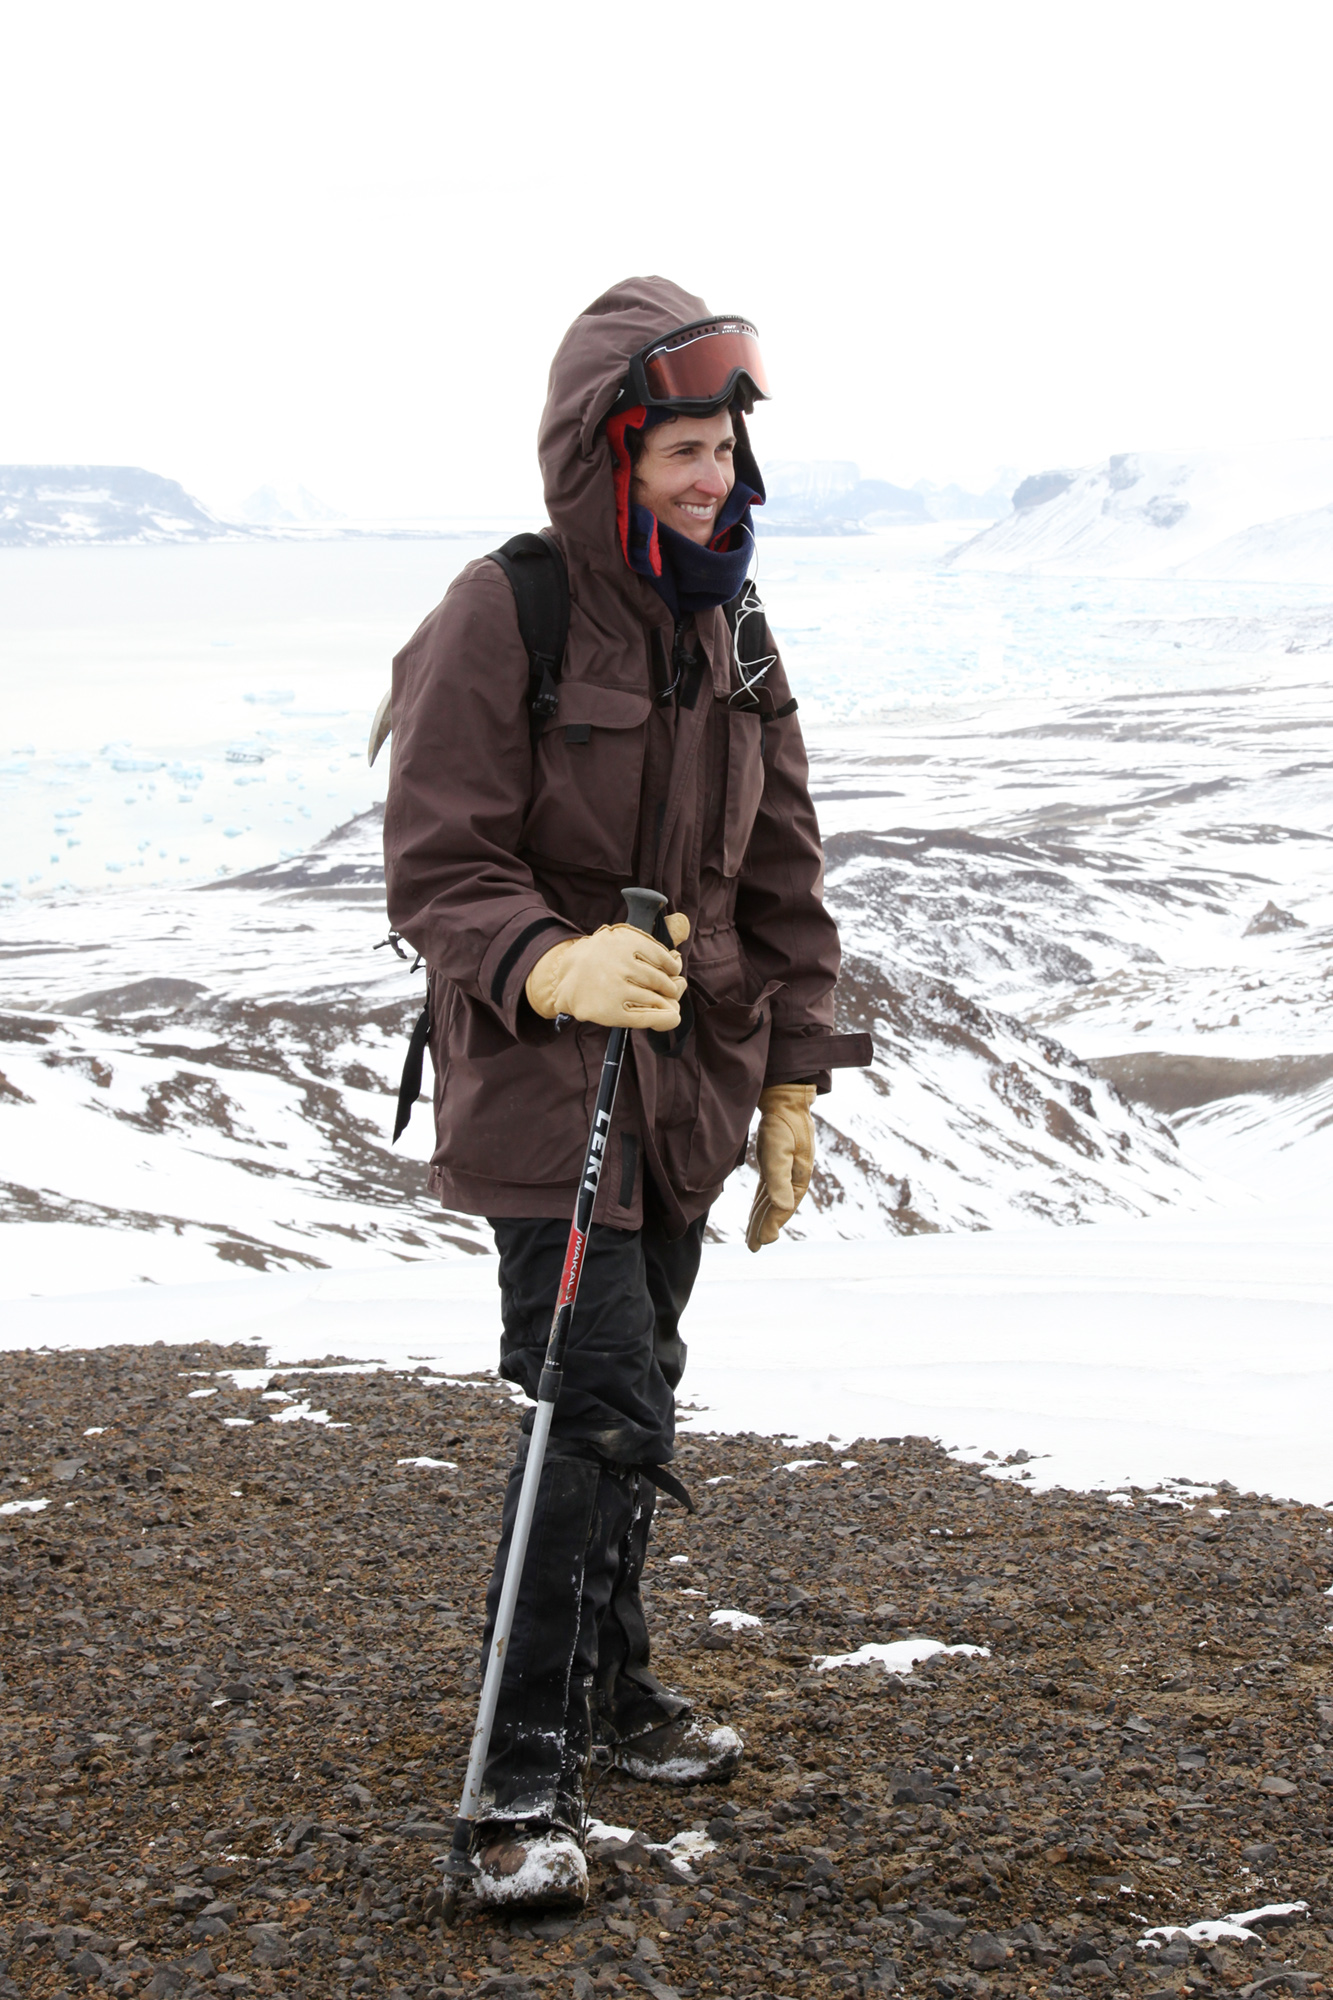 A scientist in a large coat stands on a ridge in a frozen landscape.